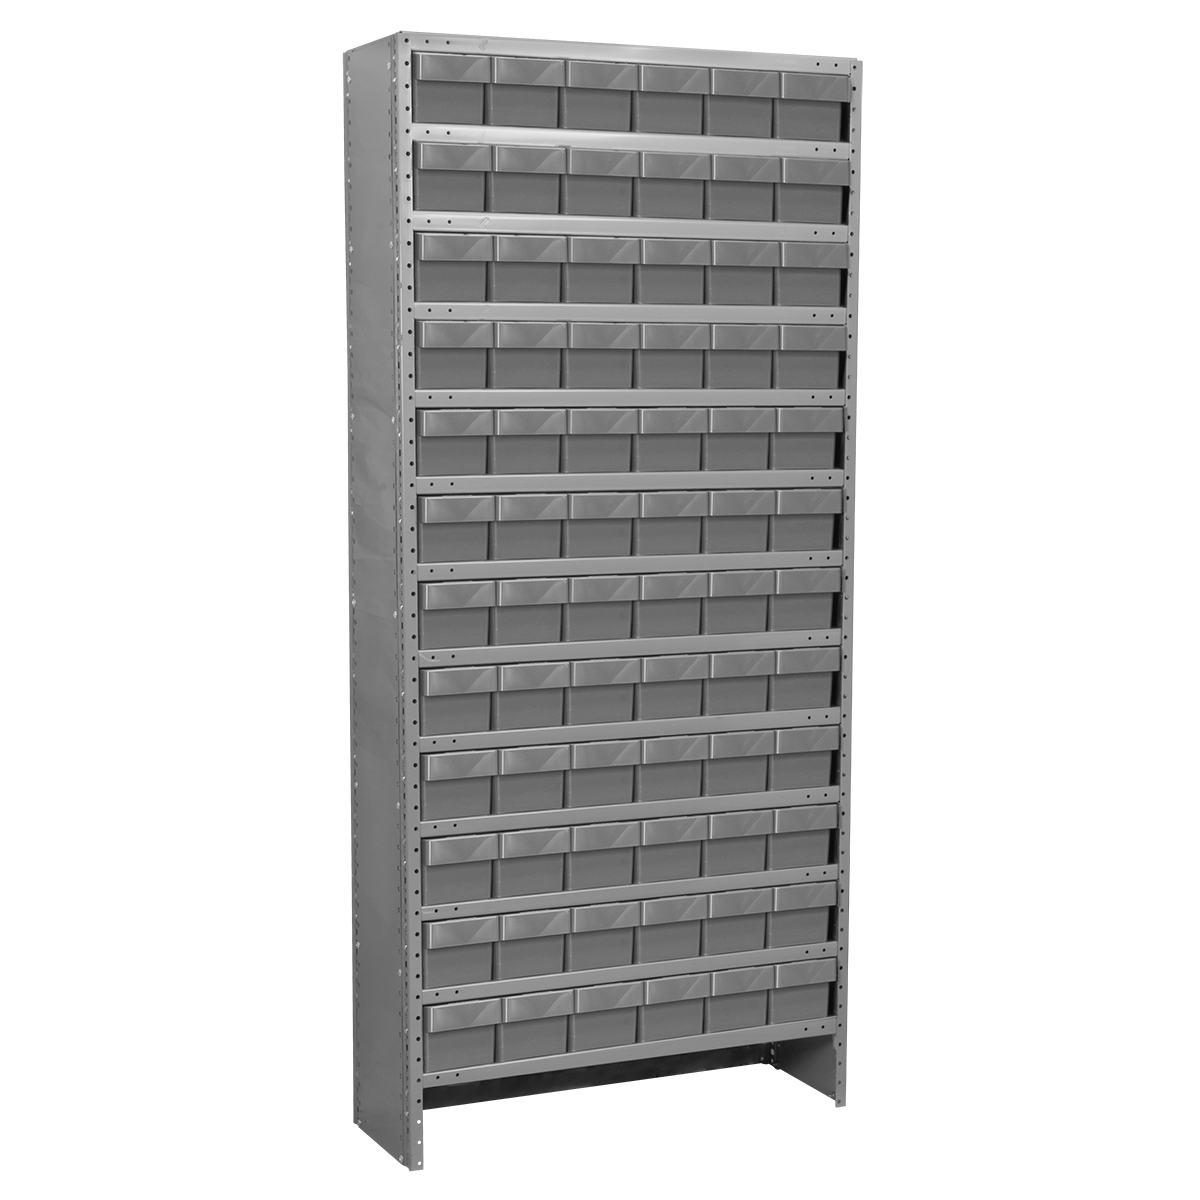 Enclosed Steel Shelving Kit, 12x36x79, 72 AkroDrawers, Gray/Gray.  This item sold in carton quantities of 1.